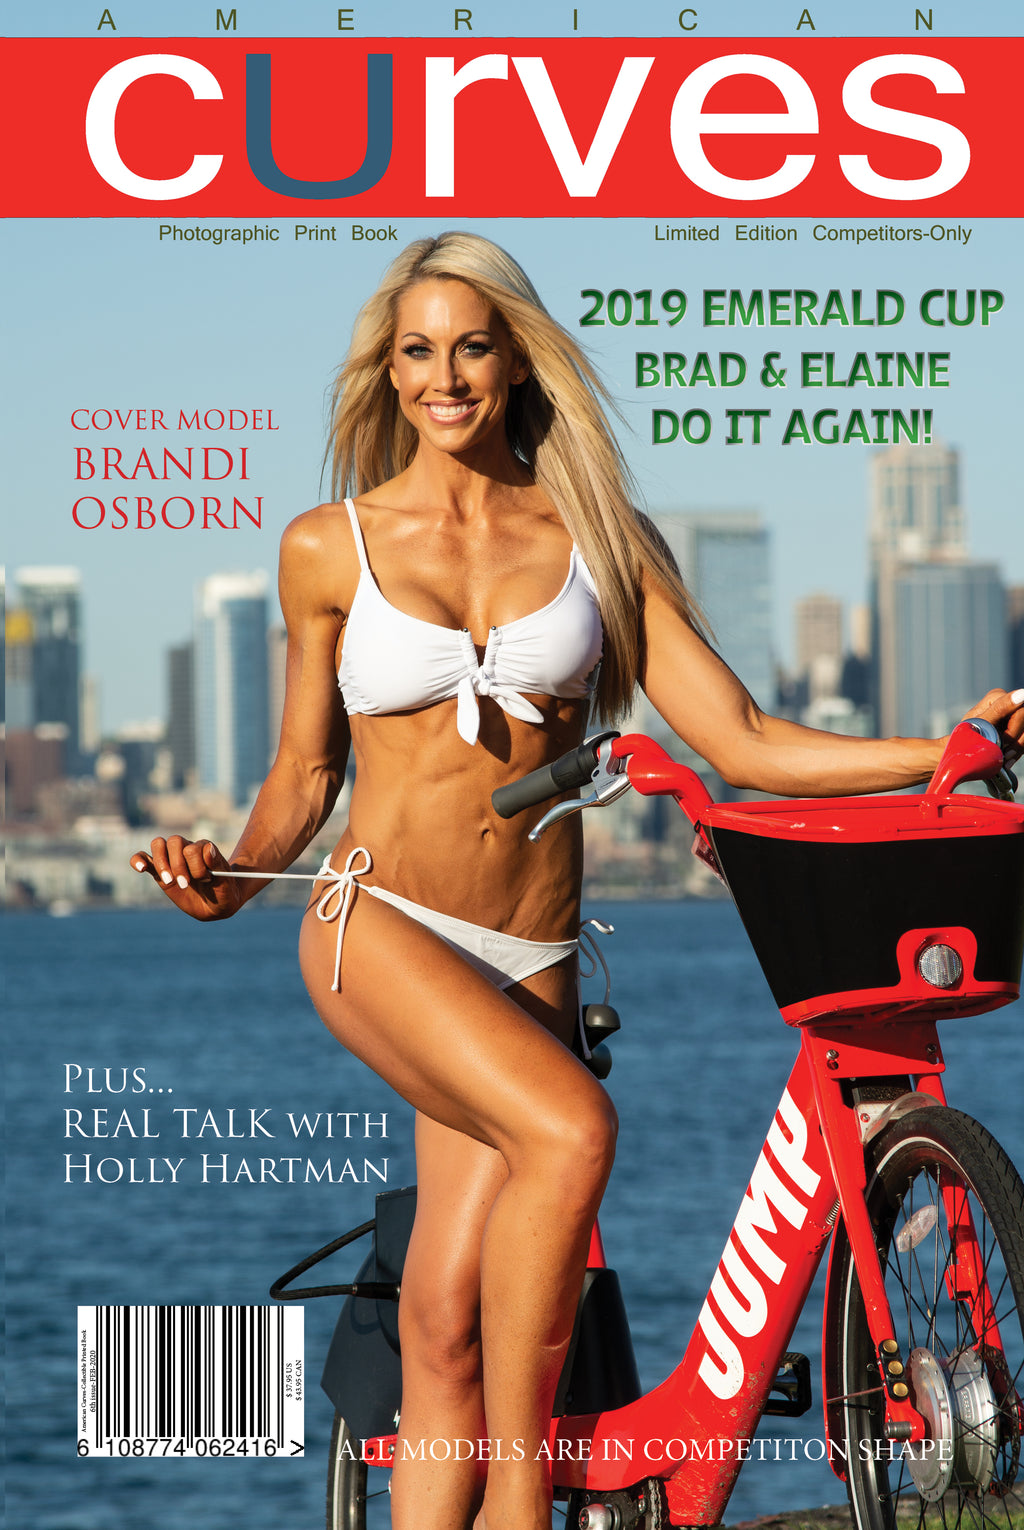 American Curves Magazine-6th Issue-Emerald Cup Special 2019 Collectors edition [Instant Download]